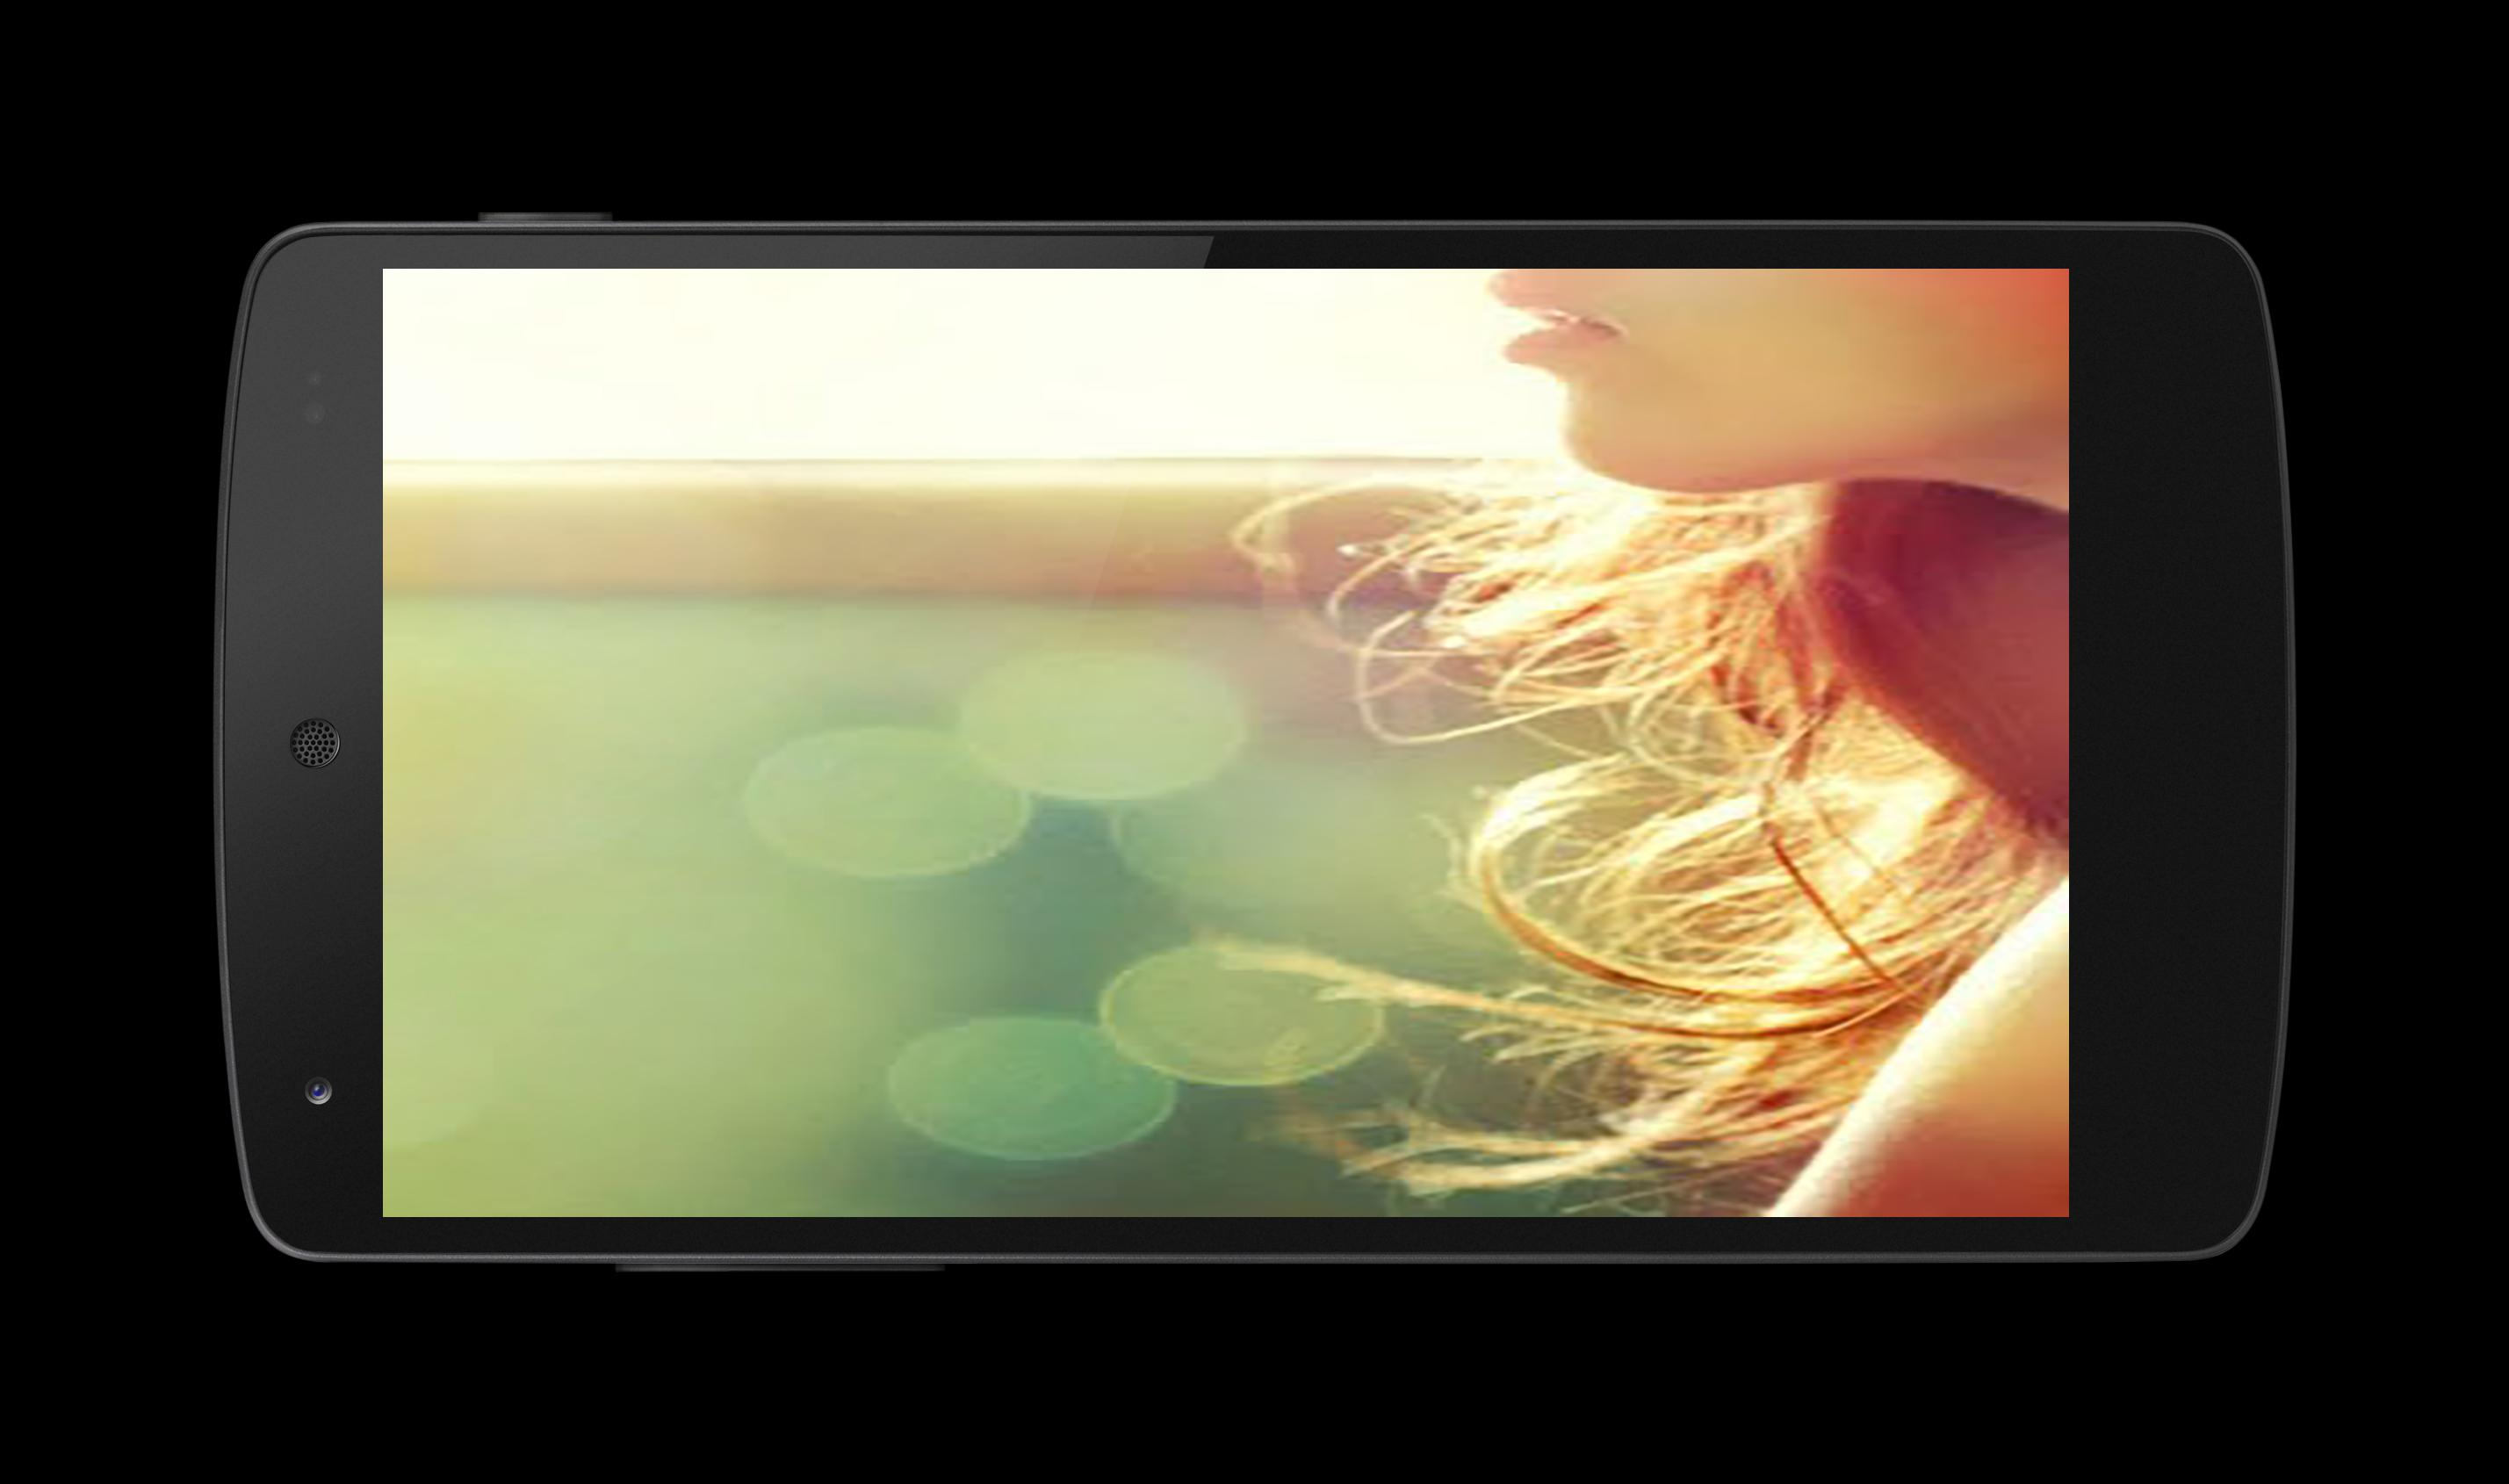 Bokeh Photo Camera for Android - APK Download